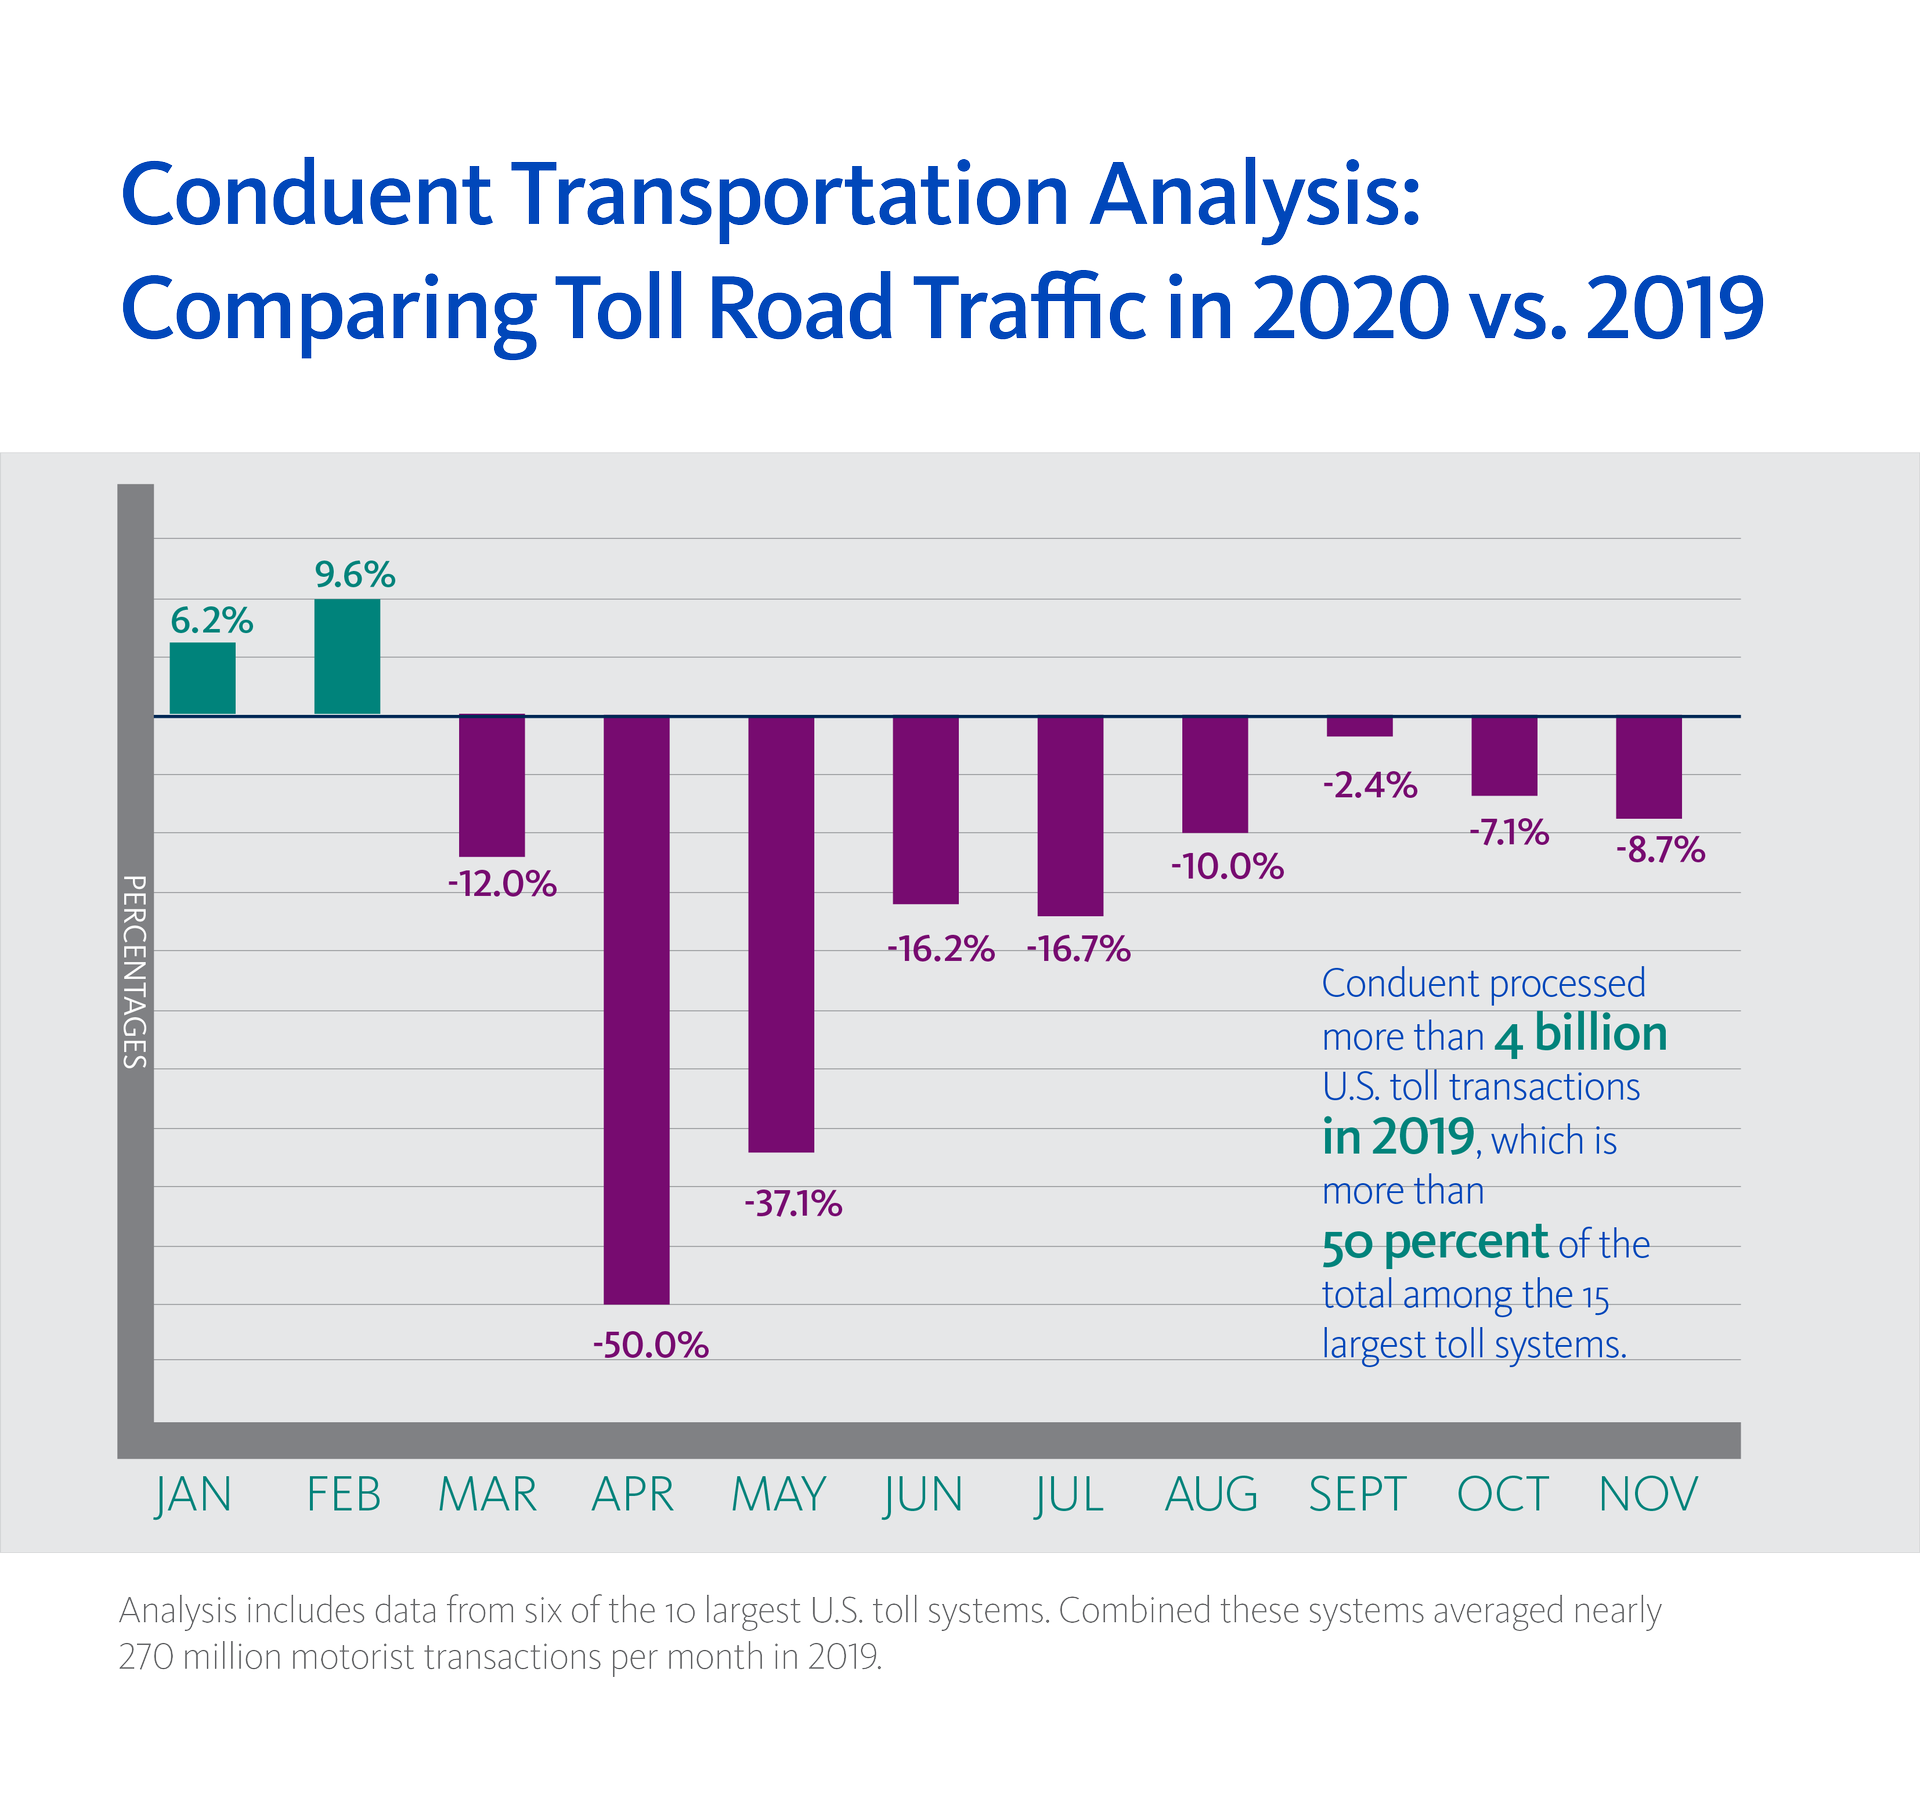 Conduent Analysis_Tolling Data Trends 2020 vs 2019